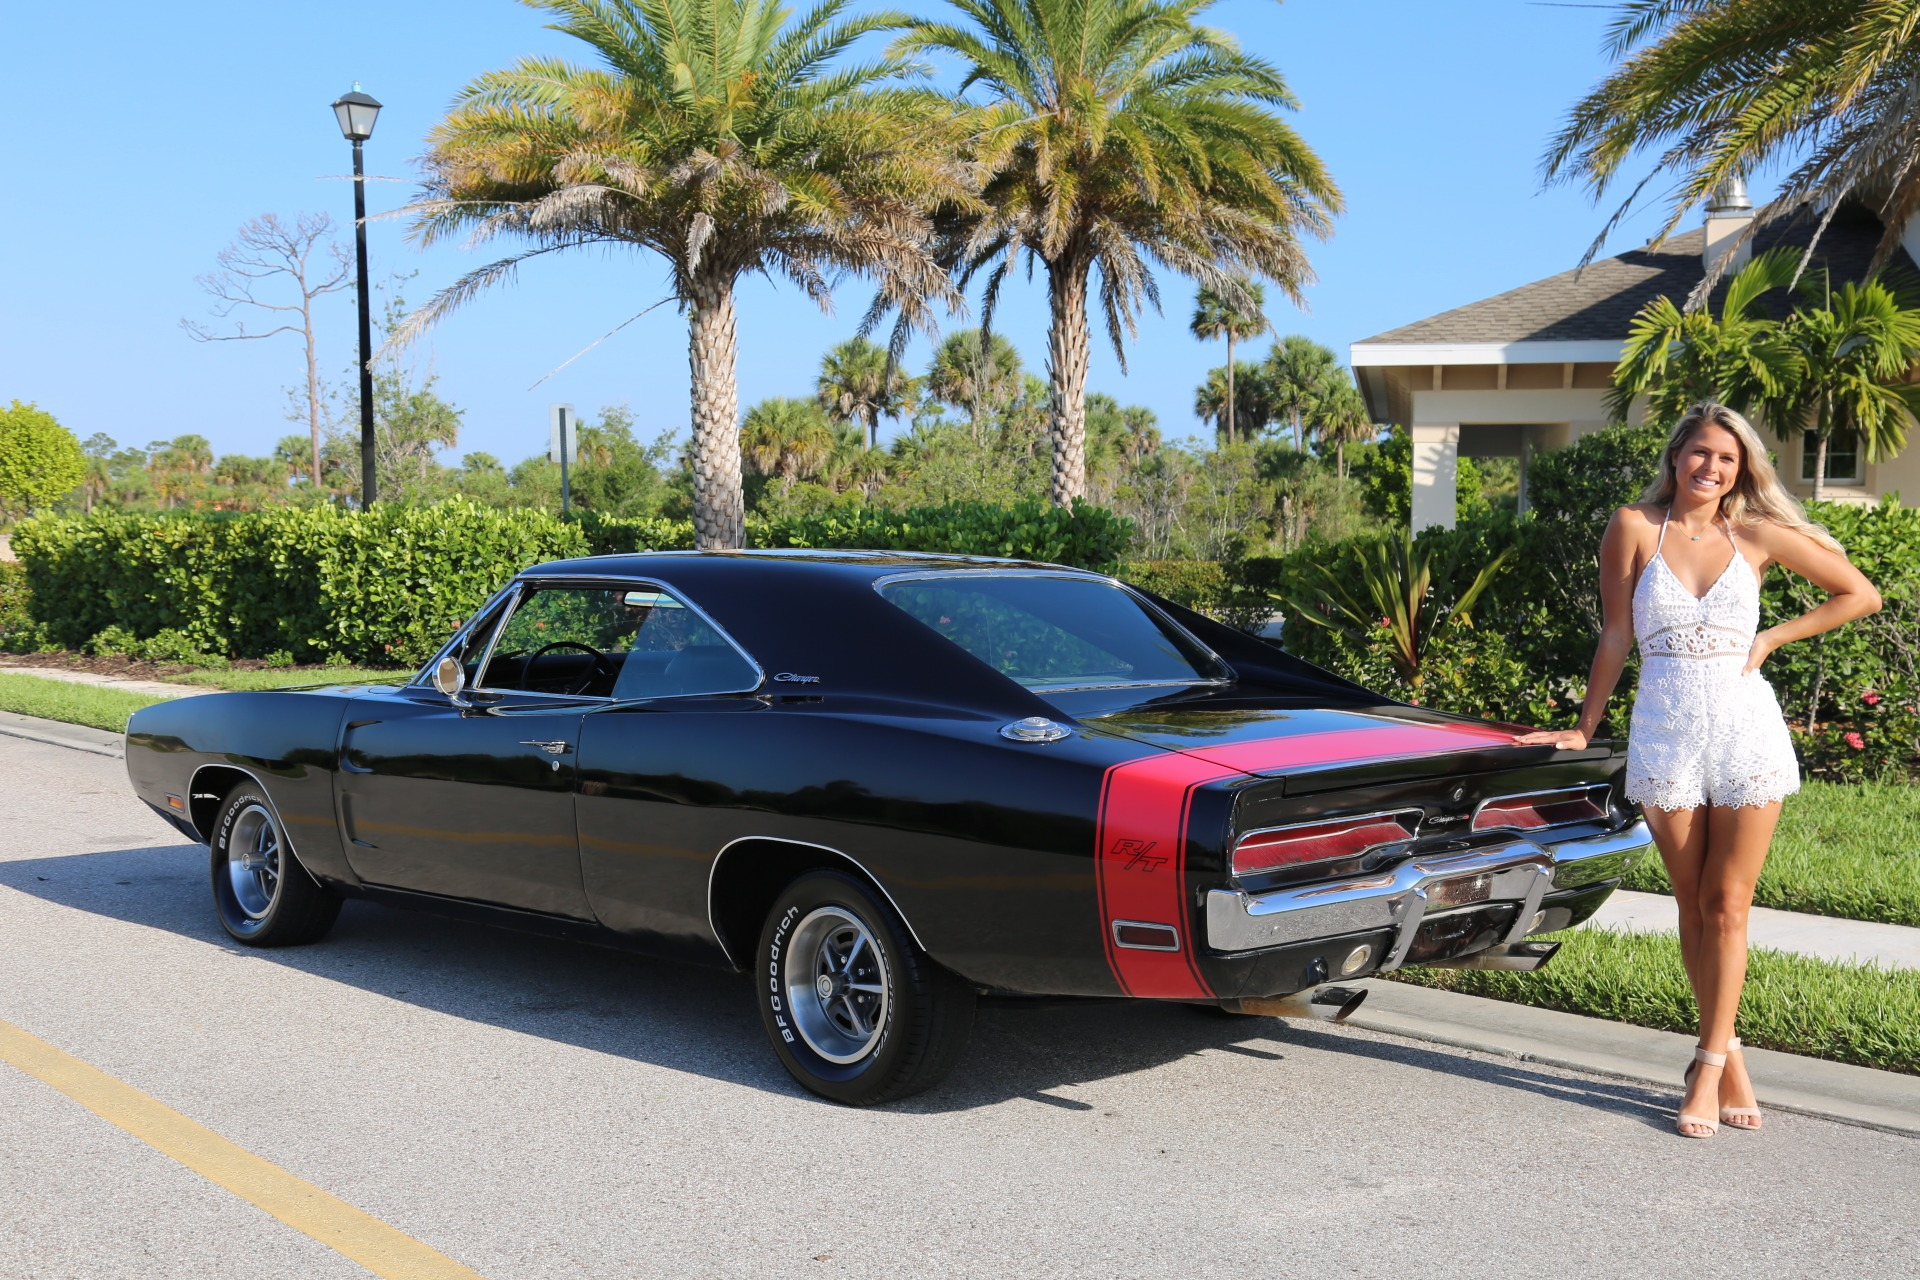 Used 1970 Dodge Charger Charger for sale $52,000 at Muscle Cars for Sale Inc. in Fort Myers FL 33912 4